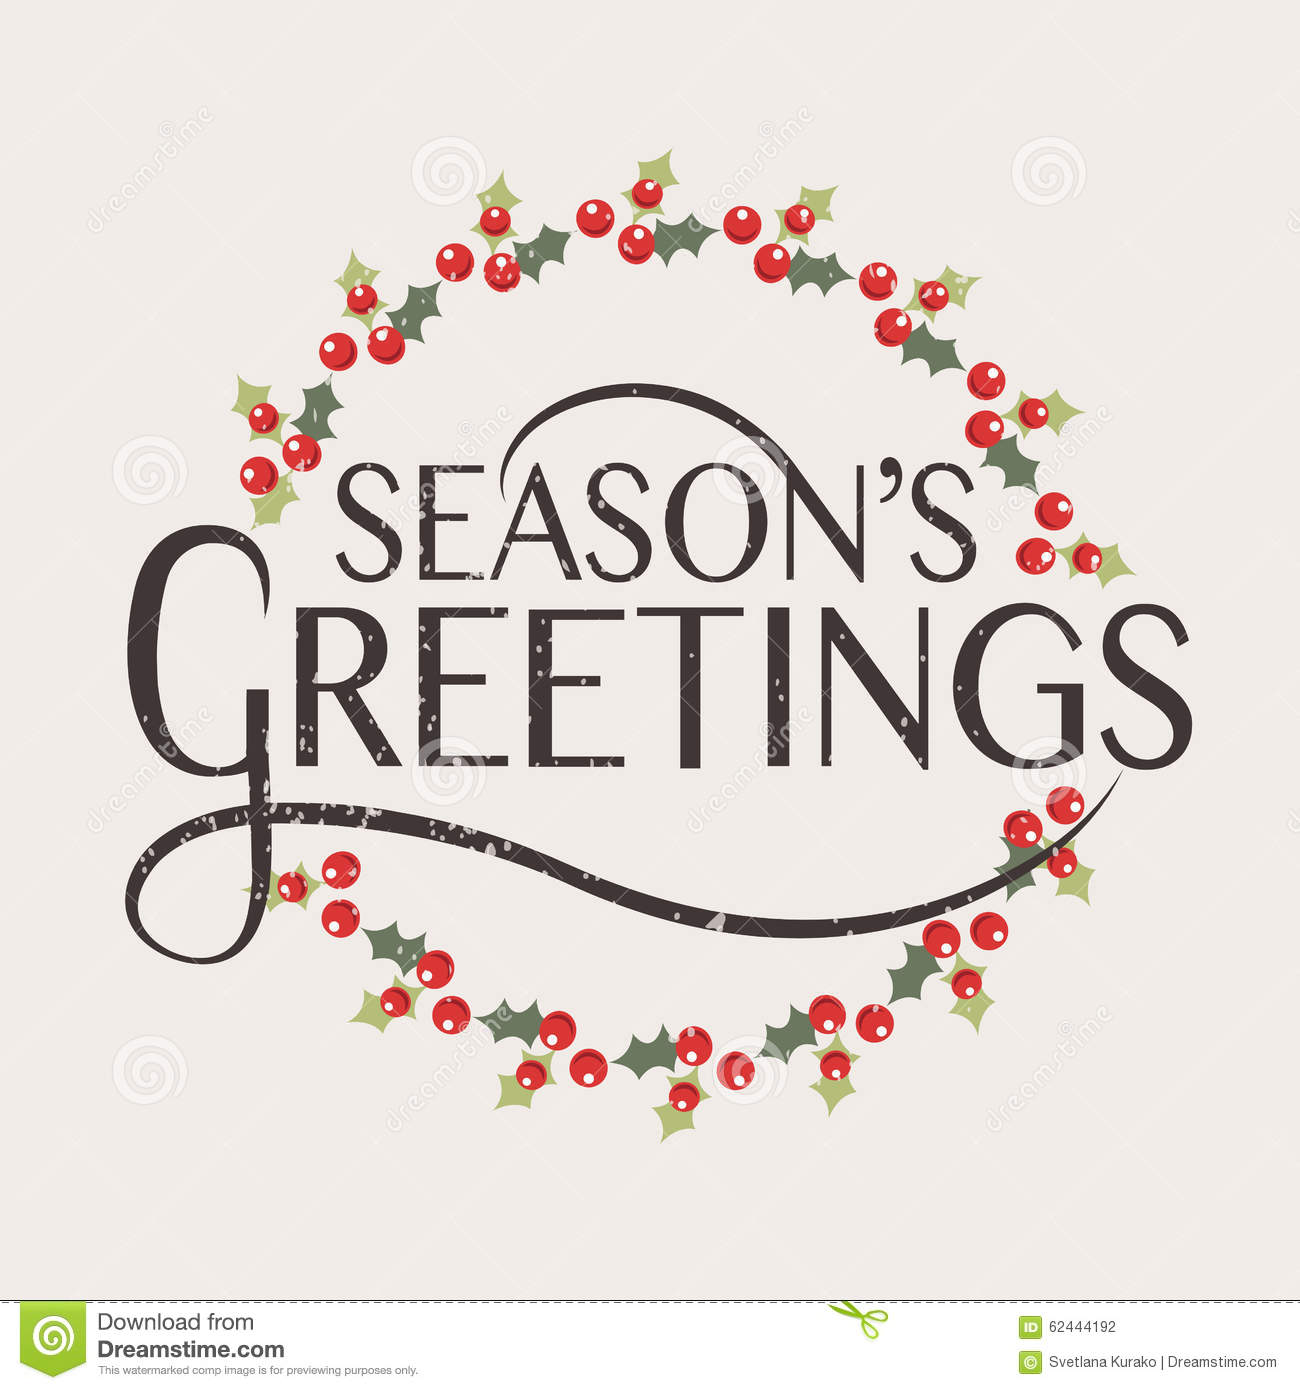 Season's Greetings Typography For Christmas/New Year Greeting Card ...